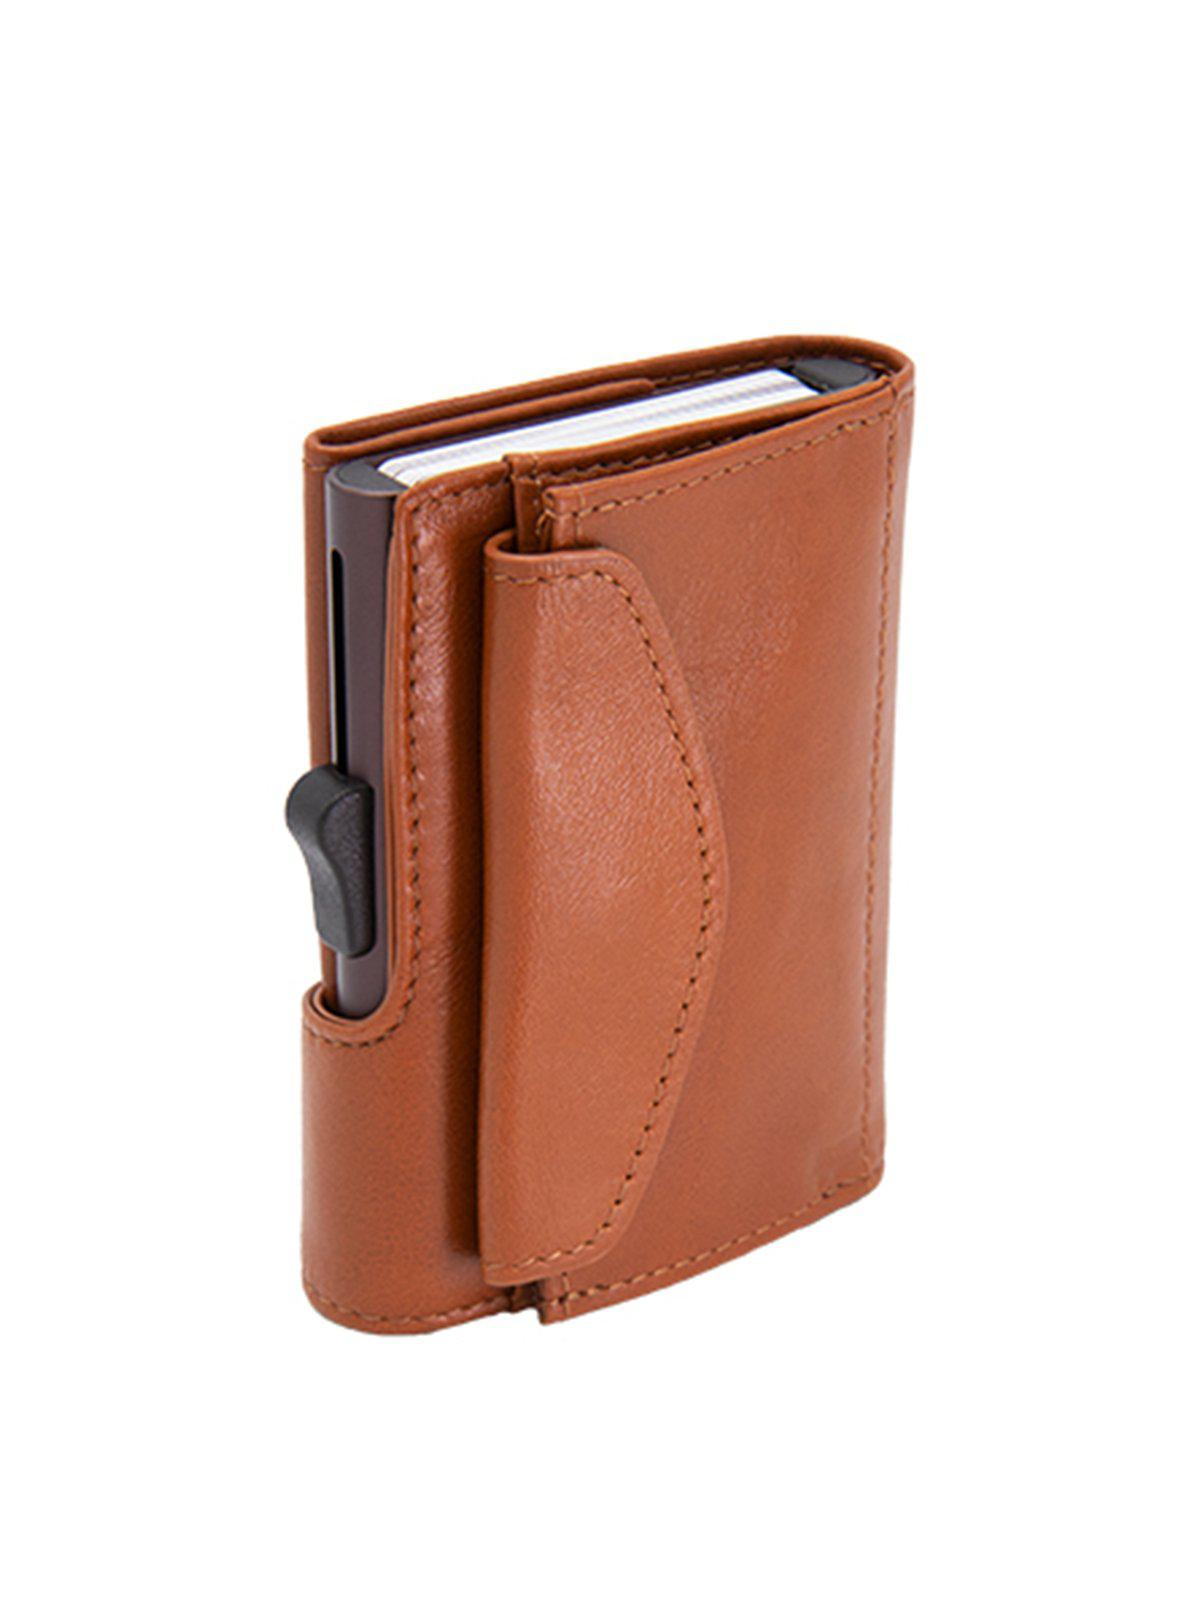 C-Secure XL Italian Leather Wallet with Coin Pouch RFID Chestnut Brown - MORE by Morello Indonesia